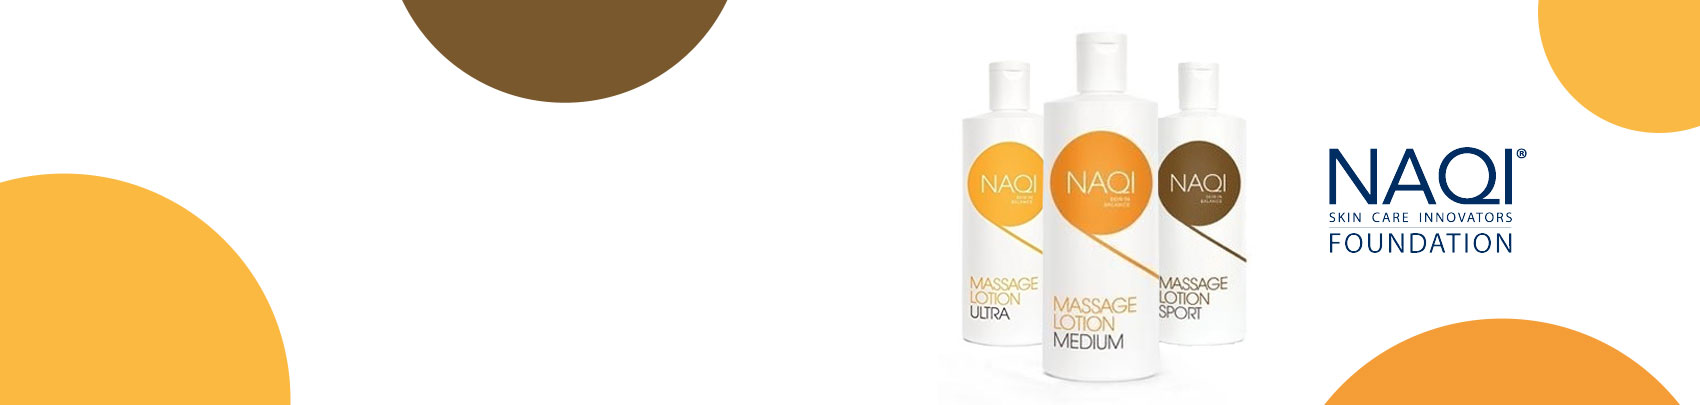 We stock a range of Naqi Massage Creams to treat sore muscles